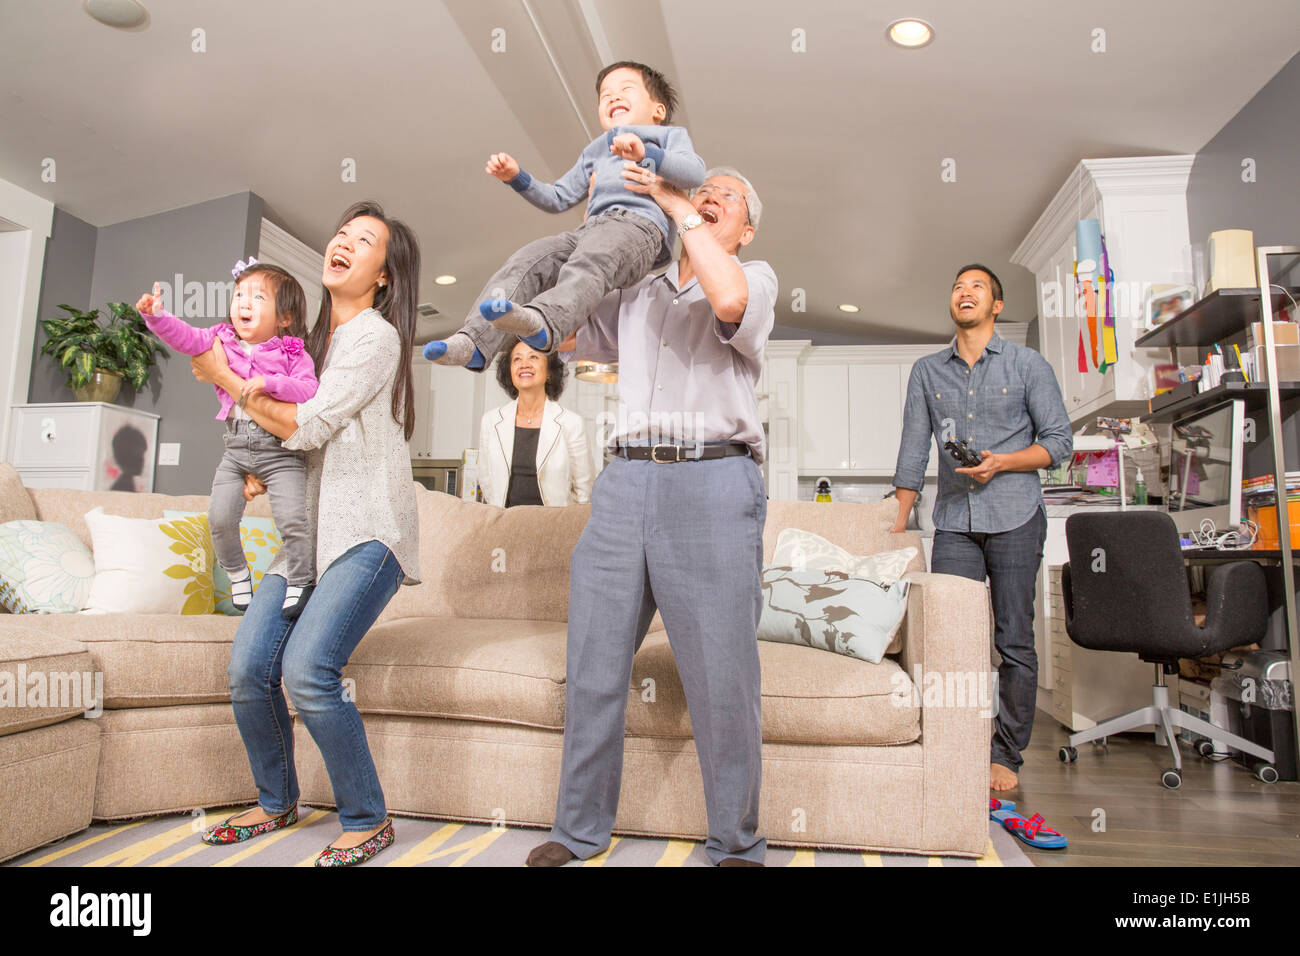 Three generation family having fun in sitting room - Stock Image